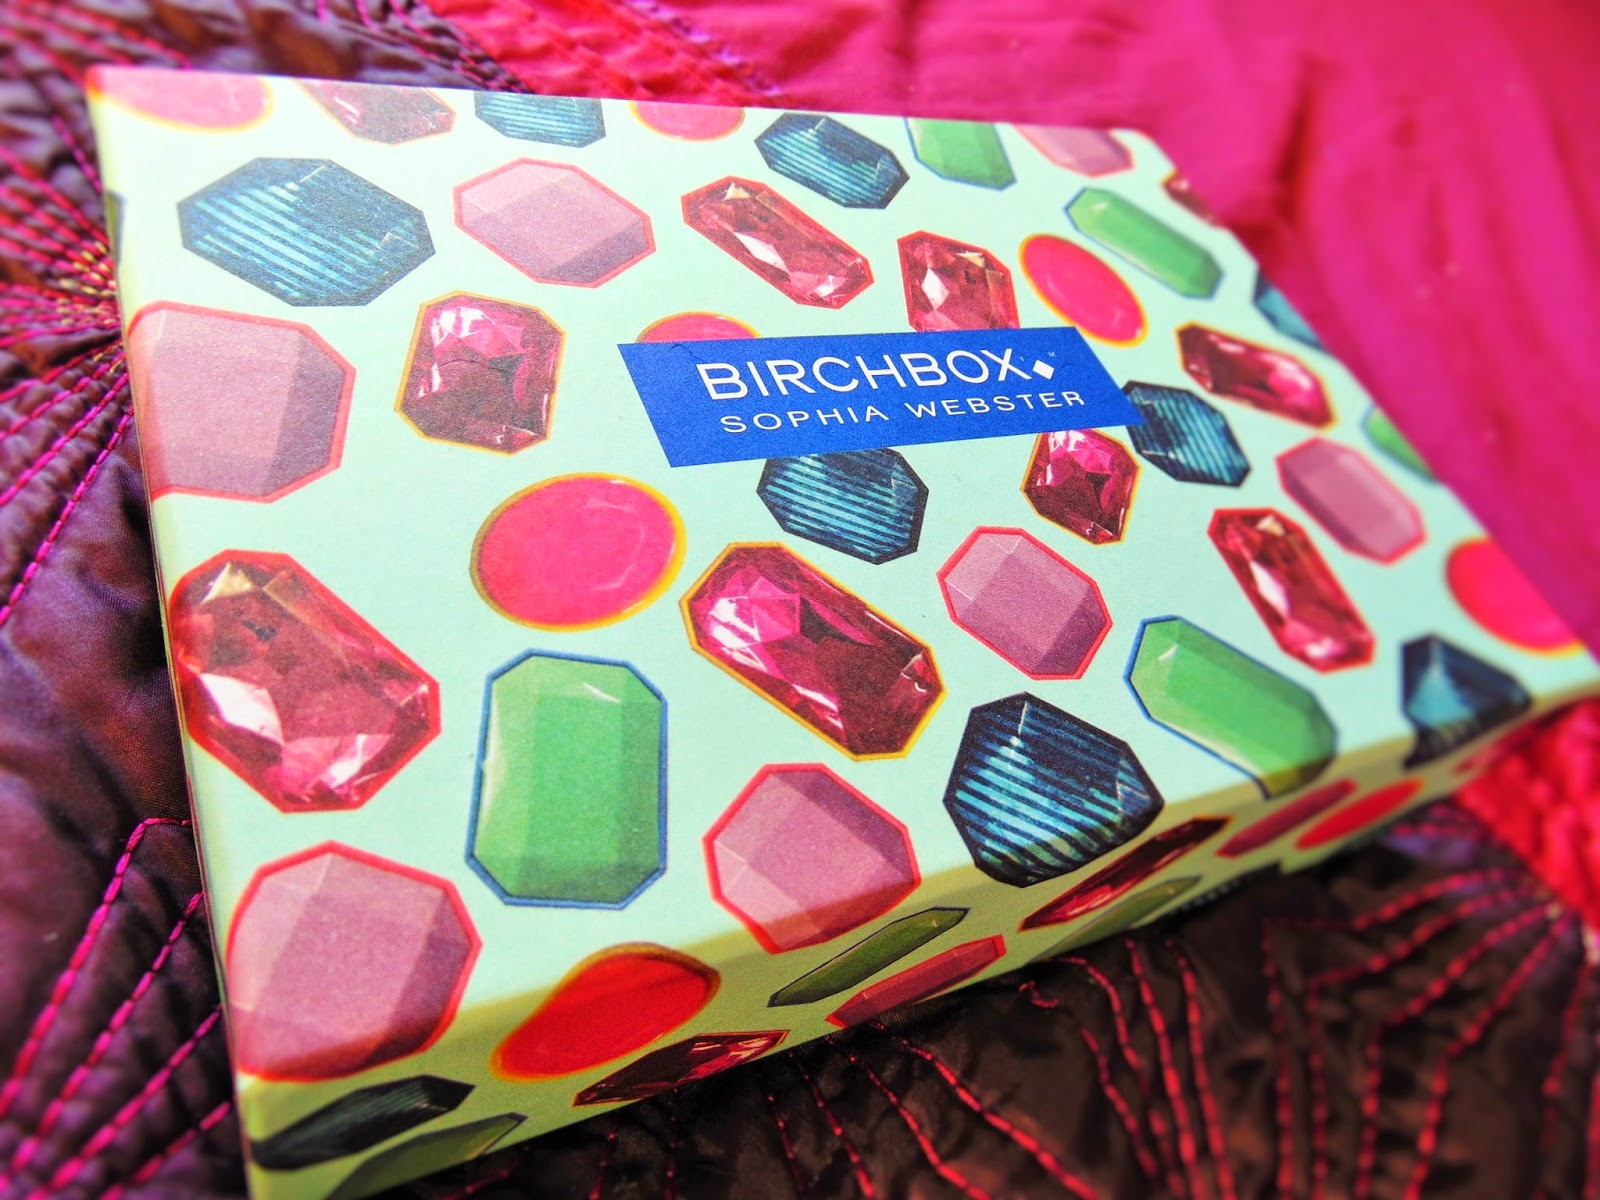 Birchbox opening and review sophia webster edition jewels